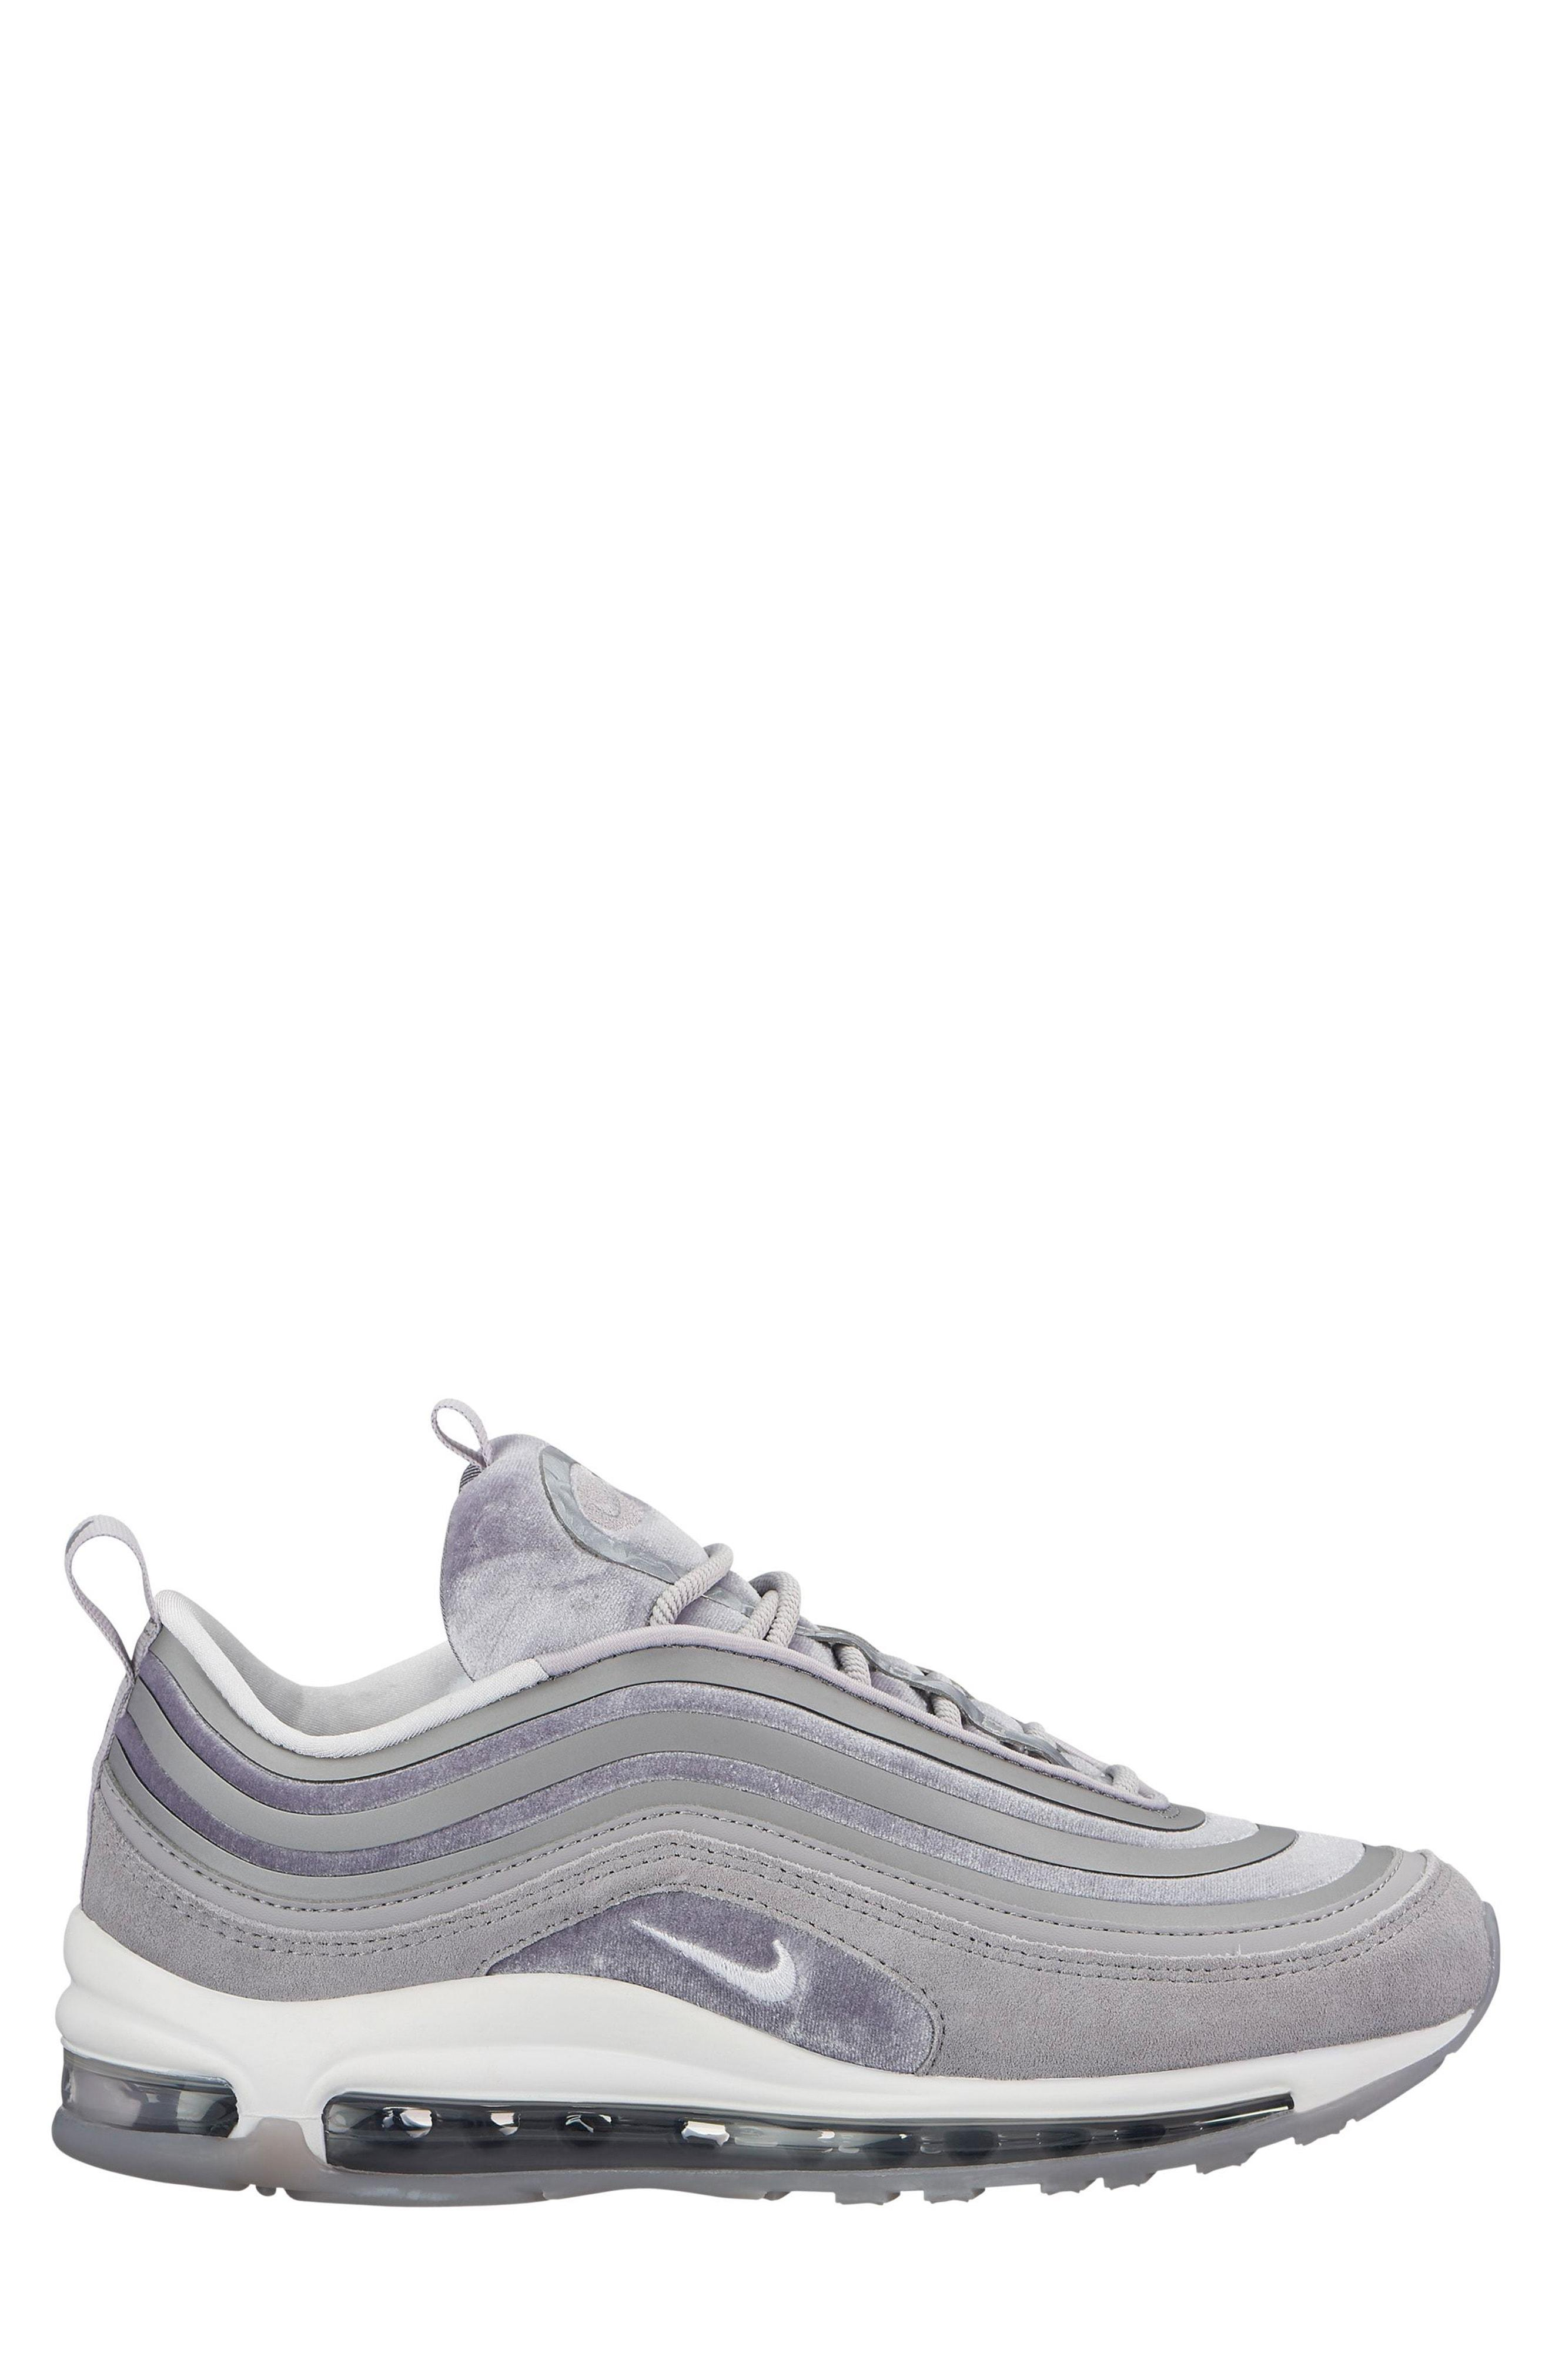 cca7af002f Nike Women'S Air Max 97 Ultra Lux Casual Shoes, Grey | ModeSens